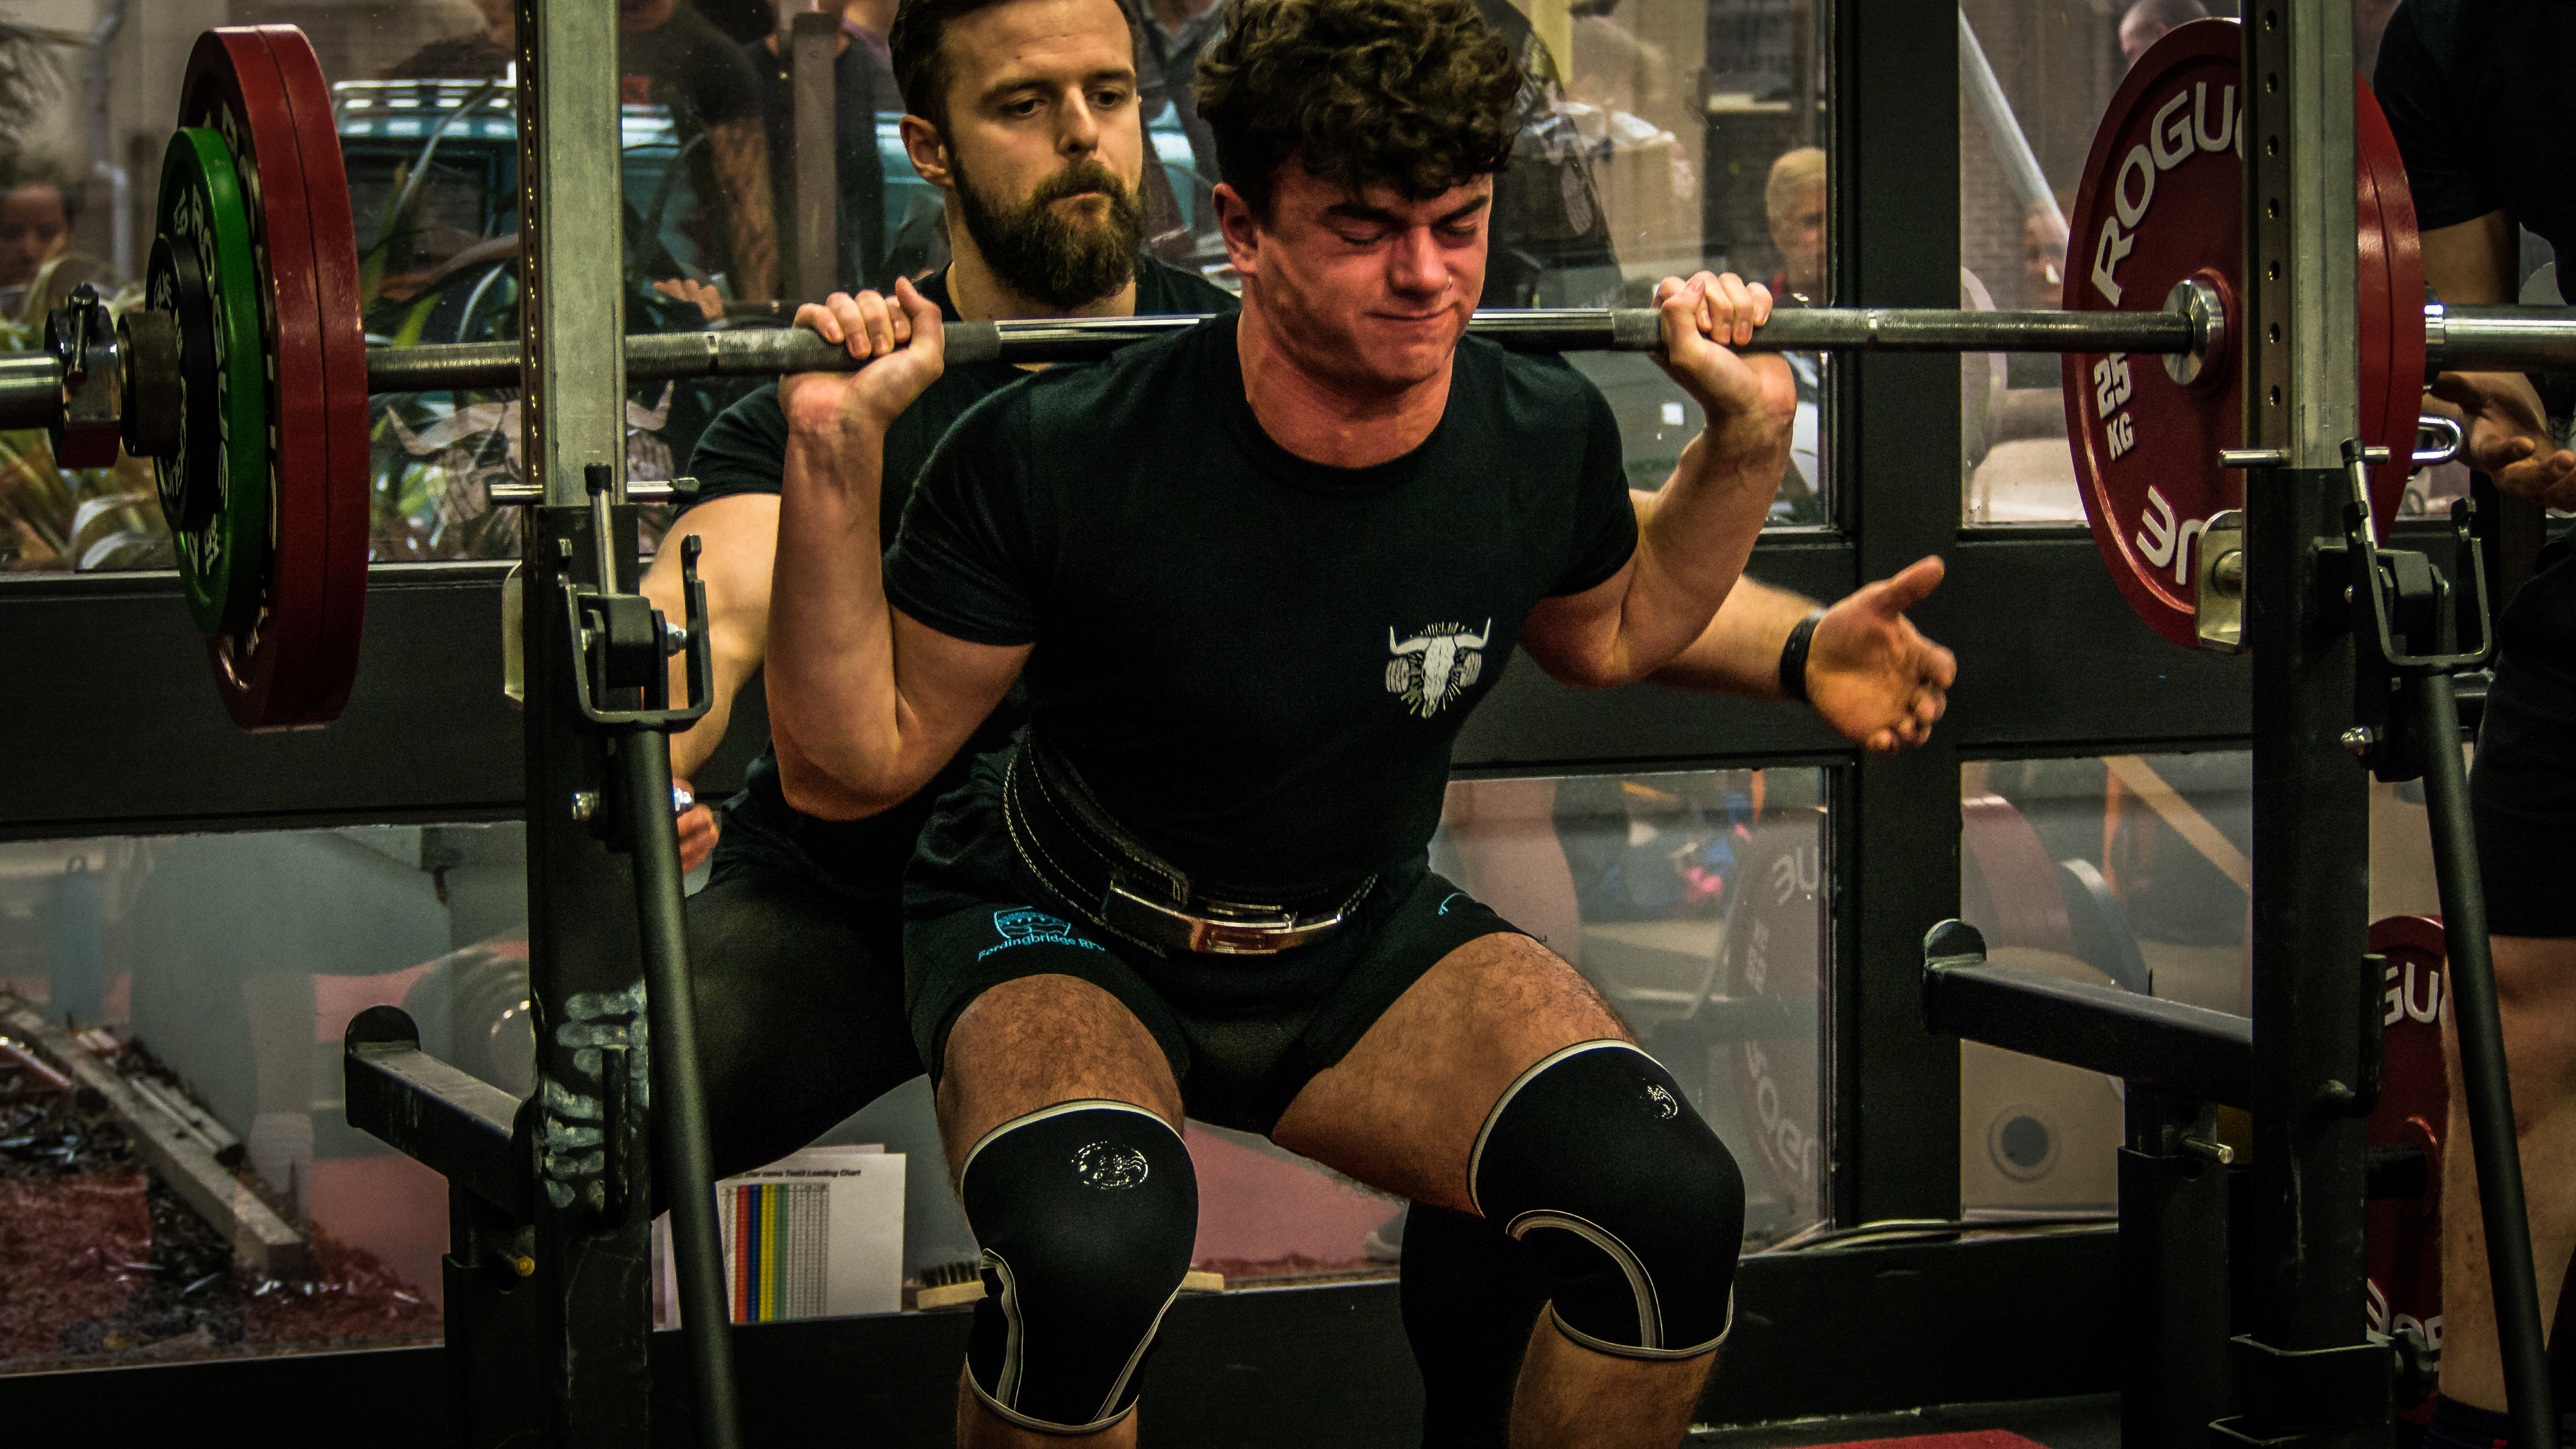 What to expect from a powerlifting competition